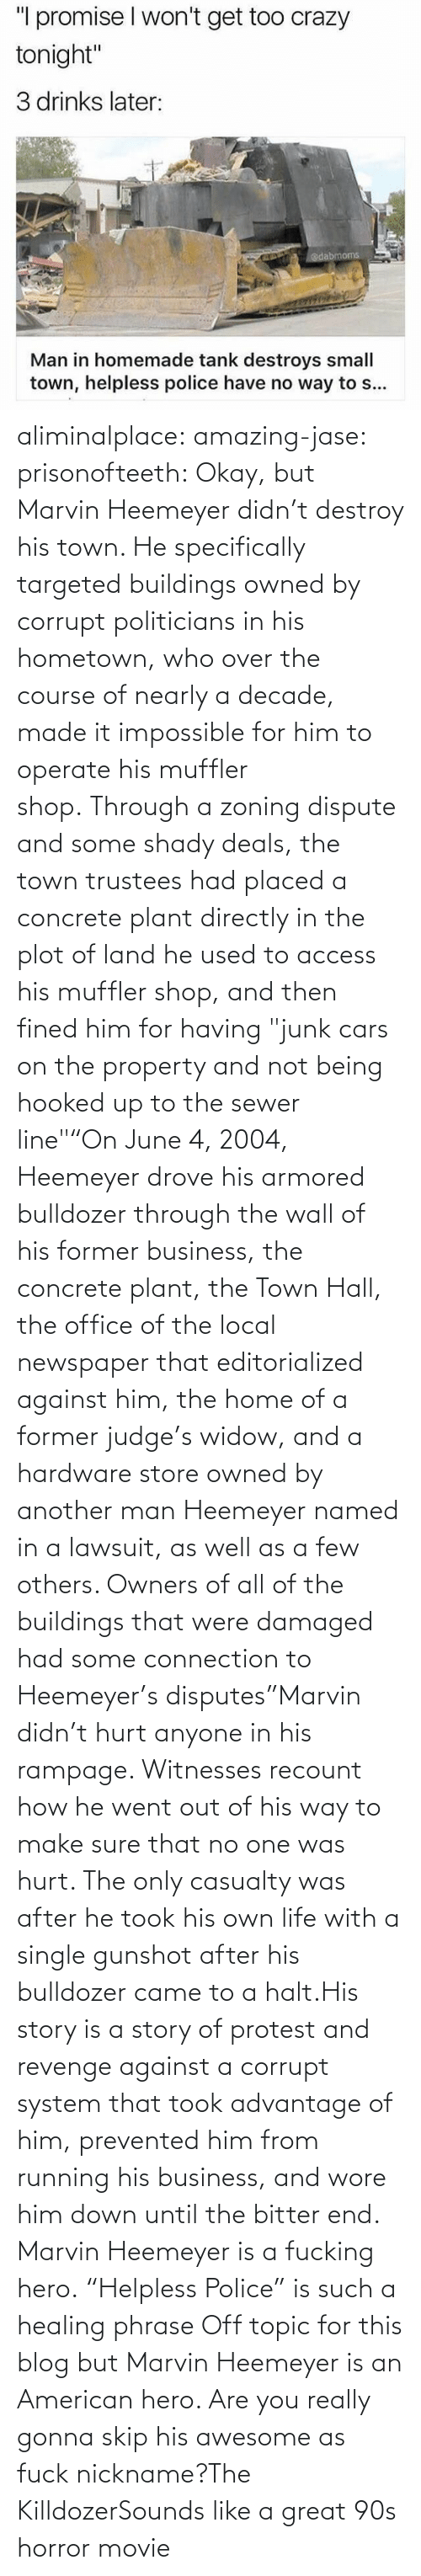 "Awesome: aliminalplace: amazing-jase:  prisonofteeth: Okay, but Marvin Heemeyer didn't destroy his town. He specifically targeted buildings owned by corrupt politicians in his hometown, who over the course of nearly a decade, made it impossible for him to operate his muffler shop. Through a zoning dispute and some shady deals, the town trustees had placed a concrete plant directly in the plot of land he used to access his muffler shop, and then fined him for having ""junk cars on the property and not being hooked up to the sewer line""""On June 4, 2004, Heemeyer drove his armored bulldozer through the wall of his former business, the concrete plant, the Town Hall, the office of the local newspaper that editorialized against him, the home of a former judge's widow, and a hardware store owned by another man Heemeyer named in a lawsuit, as well as a few others. Owners of all of the buildings that were damaged had some connection to Heemeyer's disputes""Marvin didn't hurt anyone in his rampage. Witnesses recount how he went out of his way to make sure that no one was hurt. The only casualty was after he took his own life with a single gunshot after his bulldozer came to a halt.His story is a story of protest and revenge against a corrupt system that took advantage of him, prevented him from running his business, and wore him down until the bitter end. Marvin Heemeyer is a fucking hero. ""Helpless Police"" is such a healing phrase    Off topic for this blog but Marvin Heemeyer is an American hero.     Are you really gonna skip his awesome as fuck nickname?The KilldozerSounds like a great 90s horror movie"